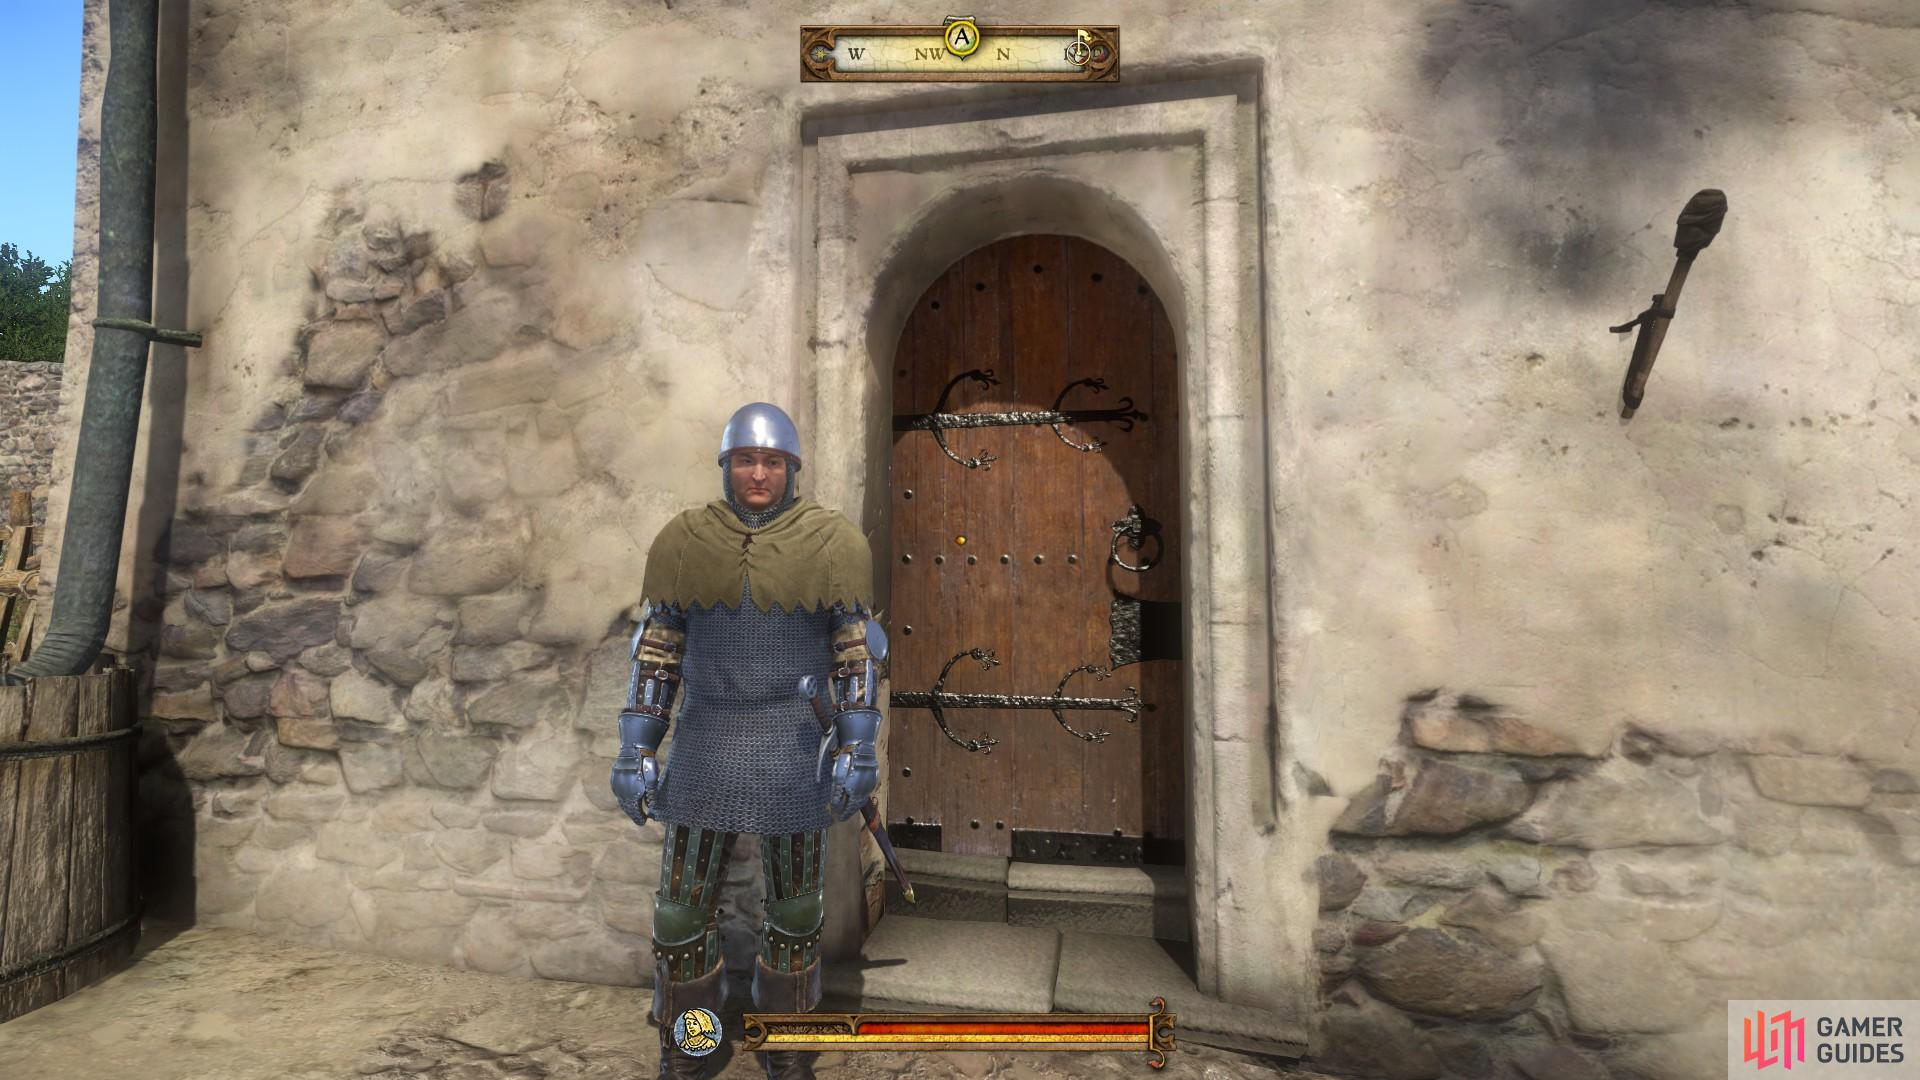 Speak with the guard and tell him that you have been sent by Master Feyfar to gain entry.